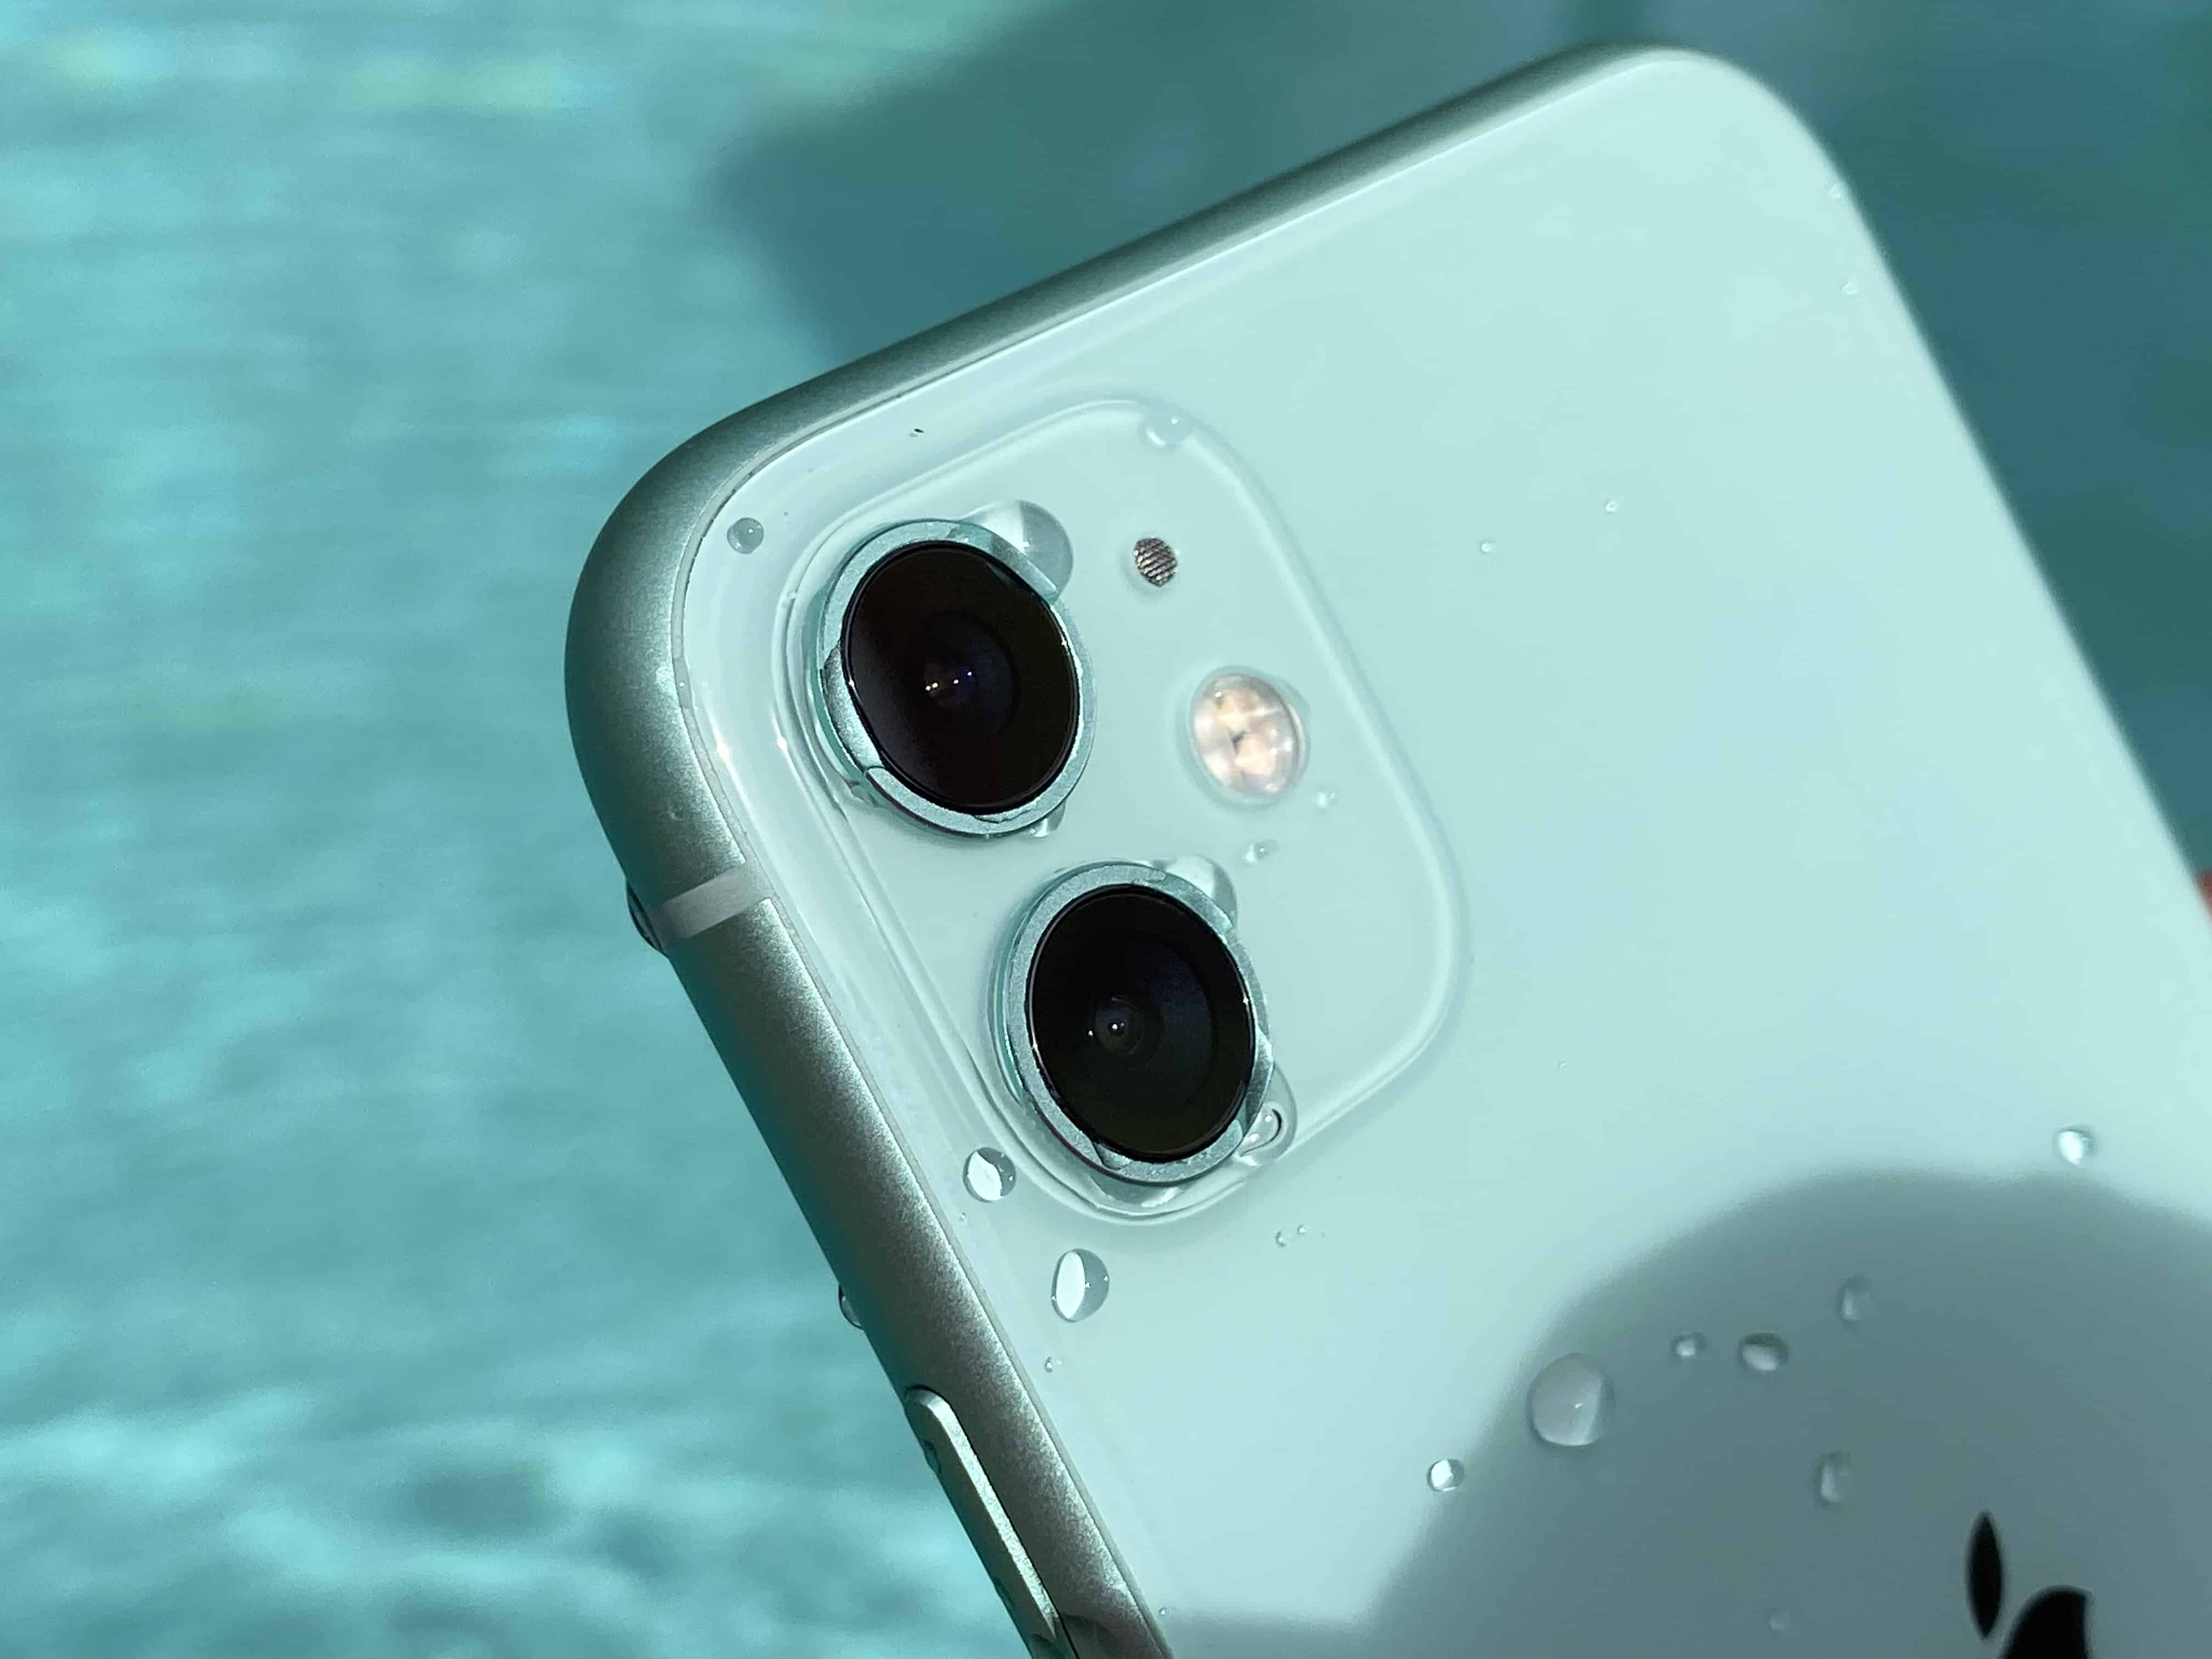 How To Change Video Resolution In The Camera App In iOS 13.2